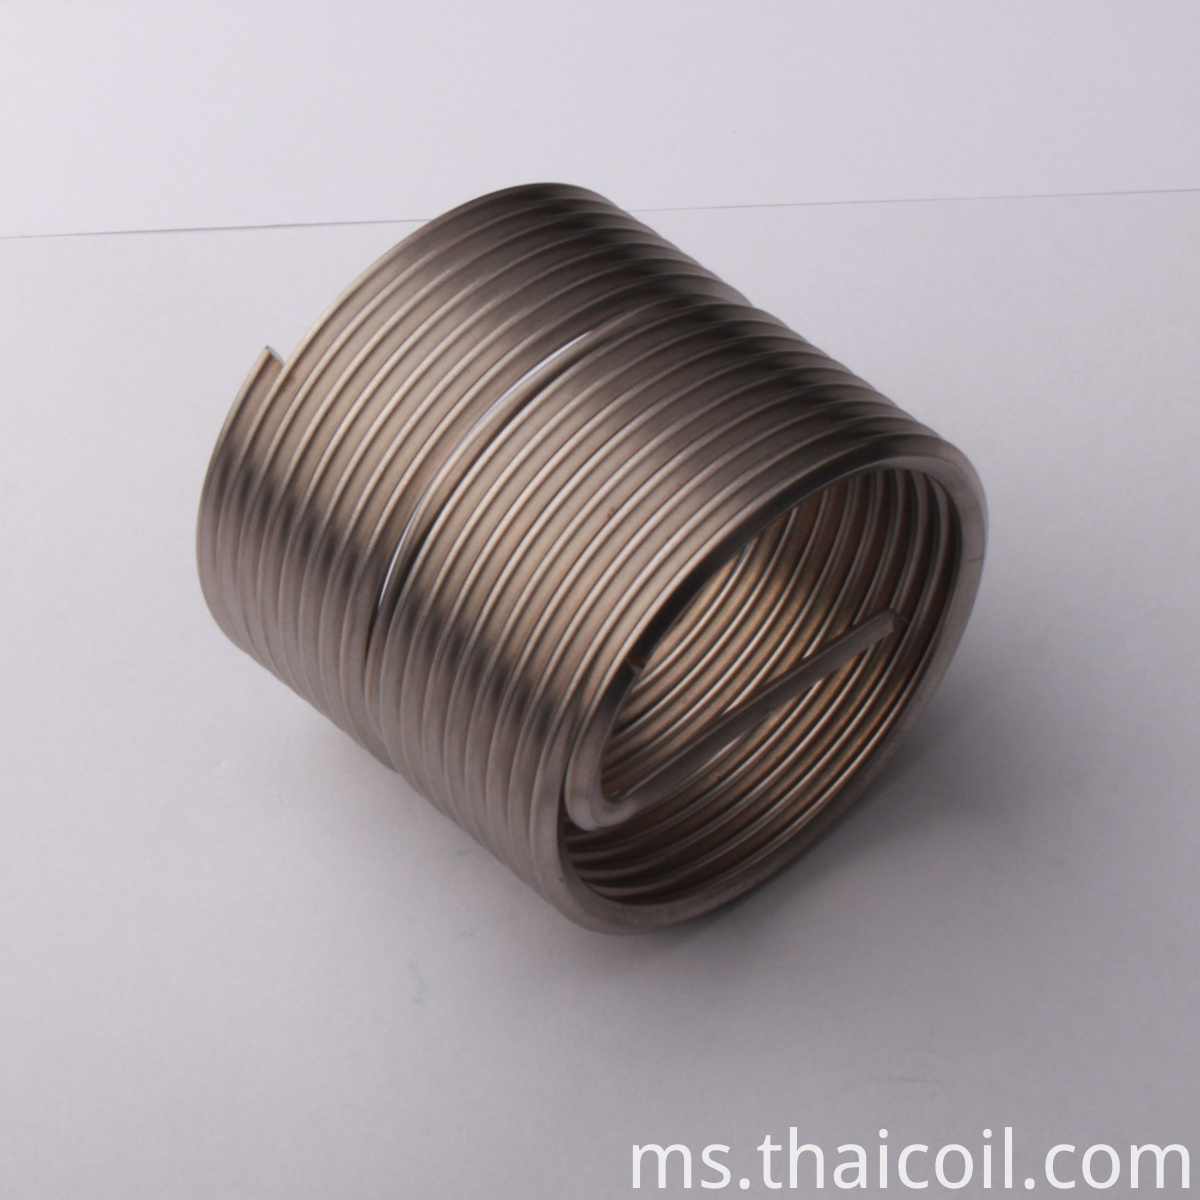 Stainless Steel Thread Inserts for Plastic